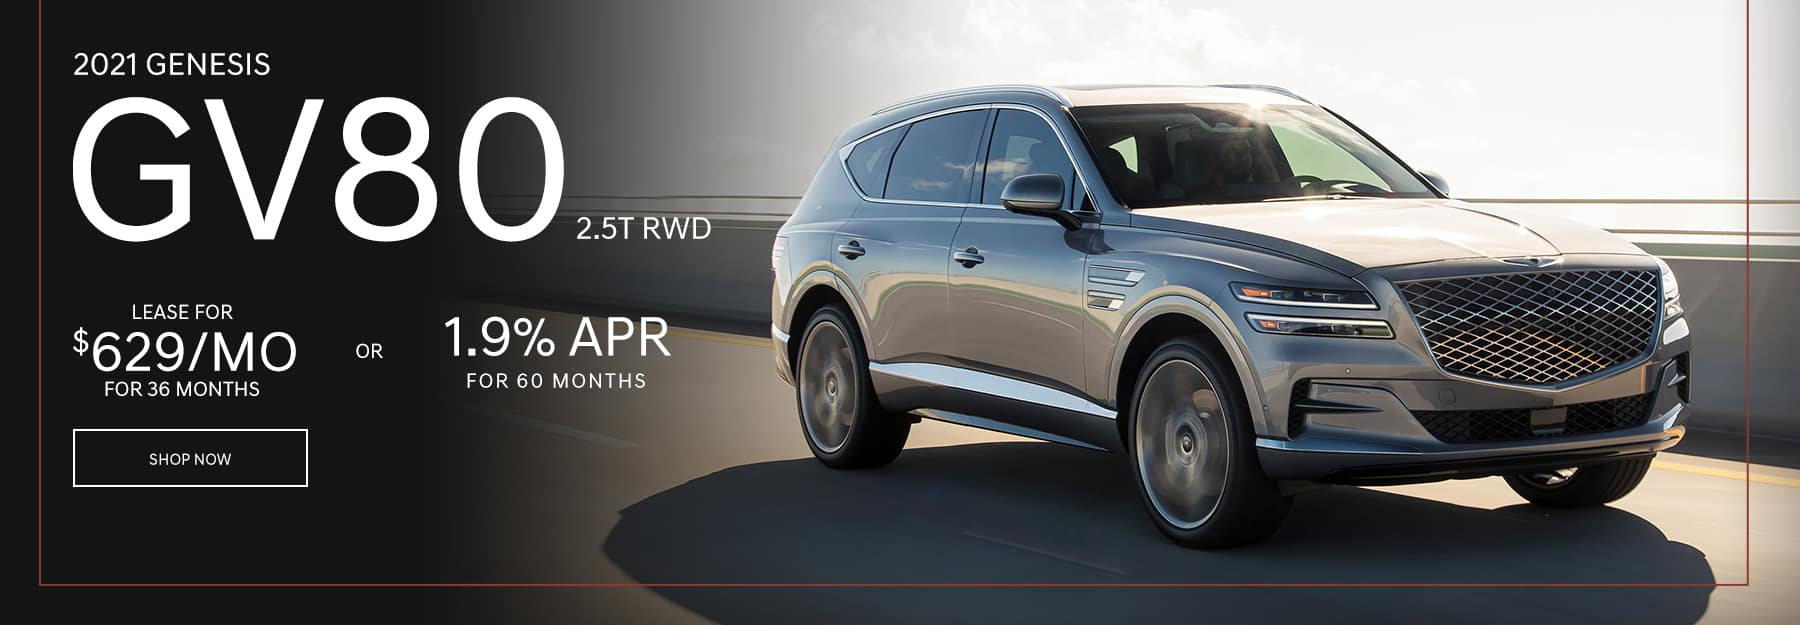 2021 GV80 2.5T RWD $629/mo. For 36 mo. or 1.9% for 60 mo.